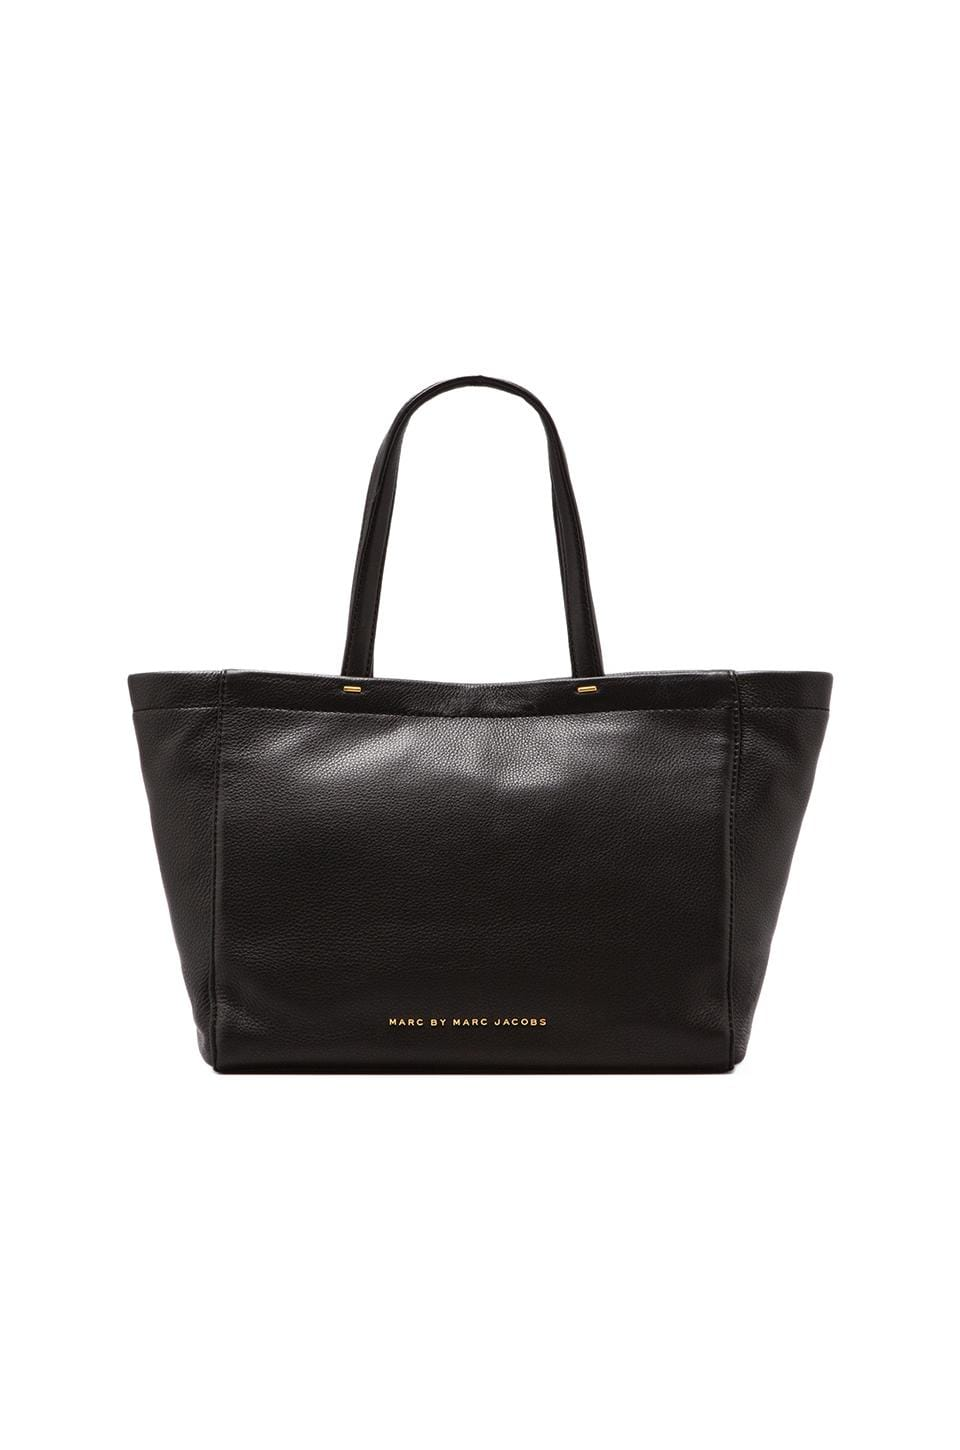 Marc by Marc Jacobs What's the T Tote in Black